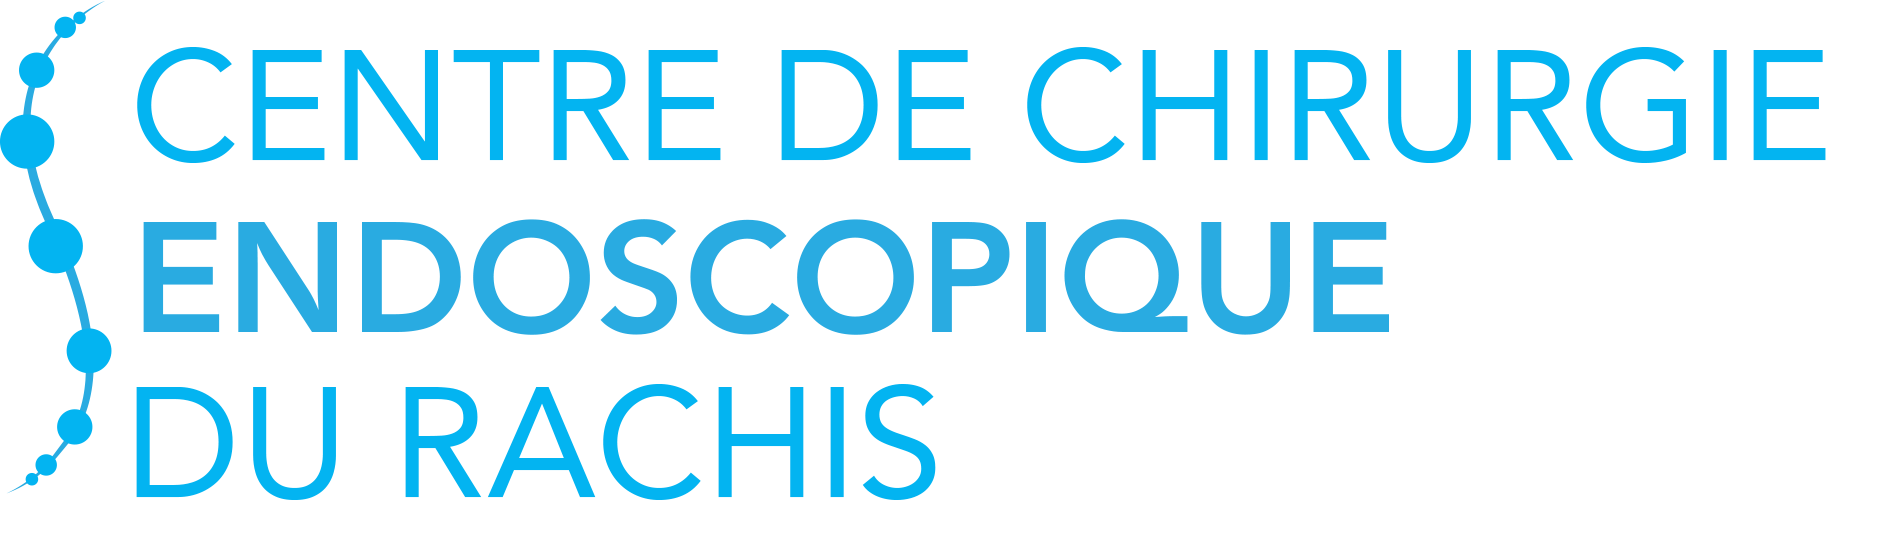 Centre de Chirurgie Endoscopique du Rachis